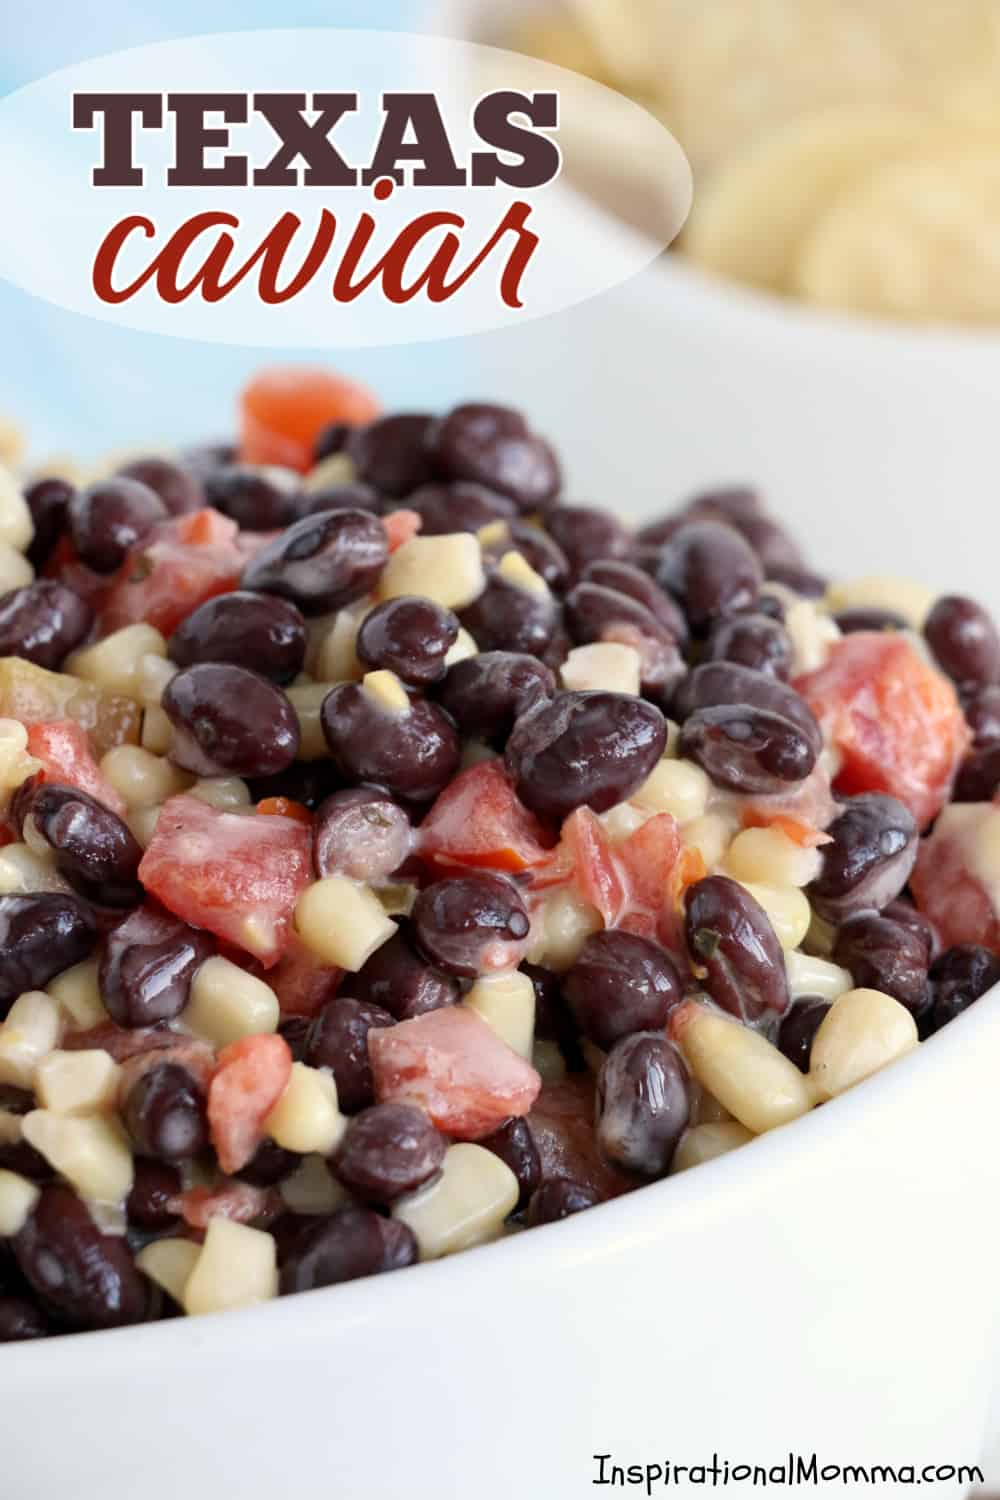 This quick, easy Texas Caviar appetizer is a flavorful bean dip with so many textures that it is sure to please everyone! #inspirationalmomma #cowboycaviar #appetizer #partyfood